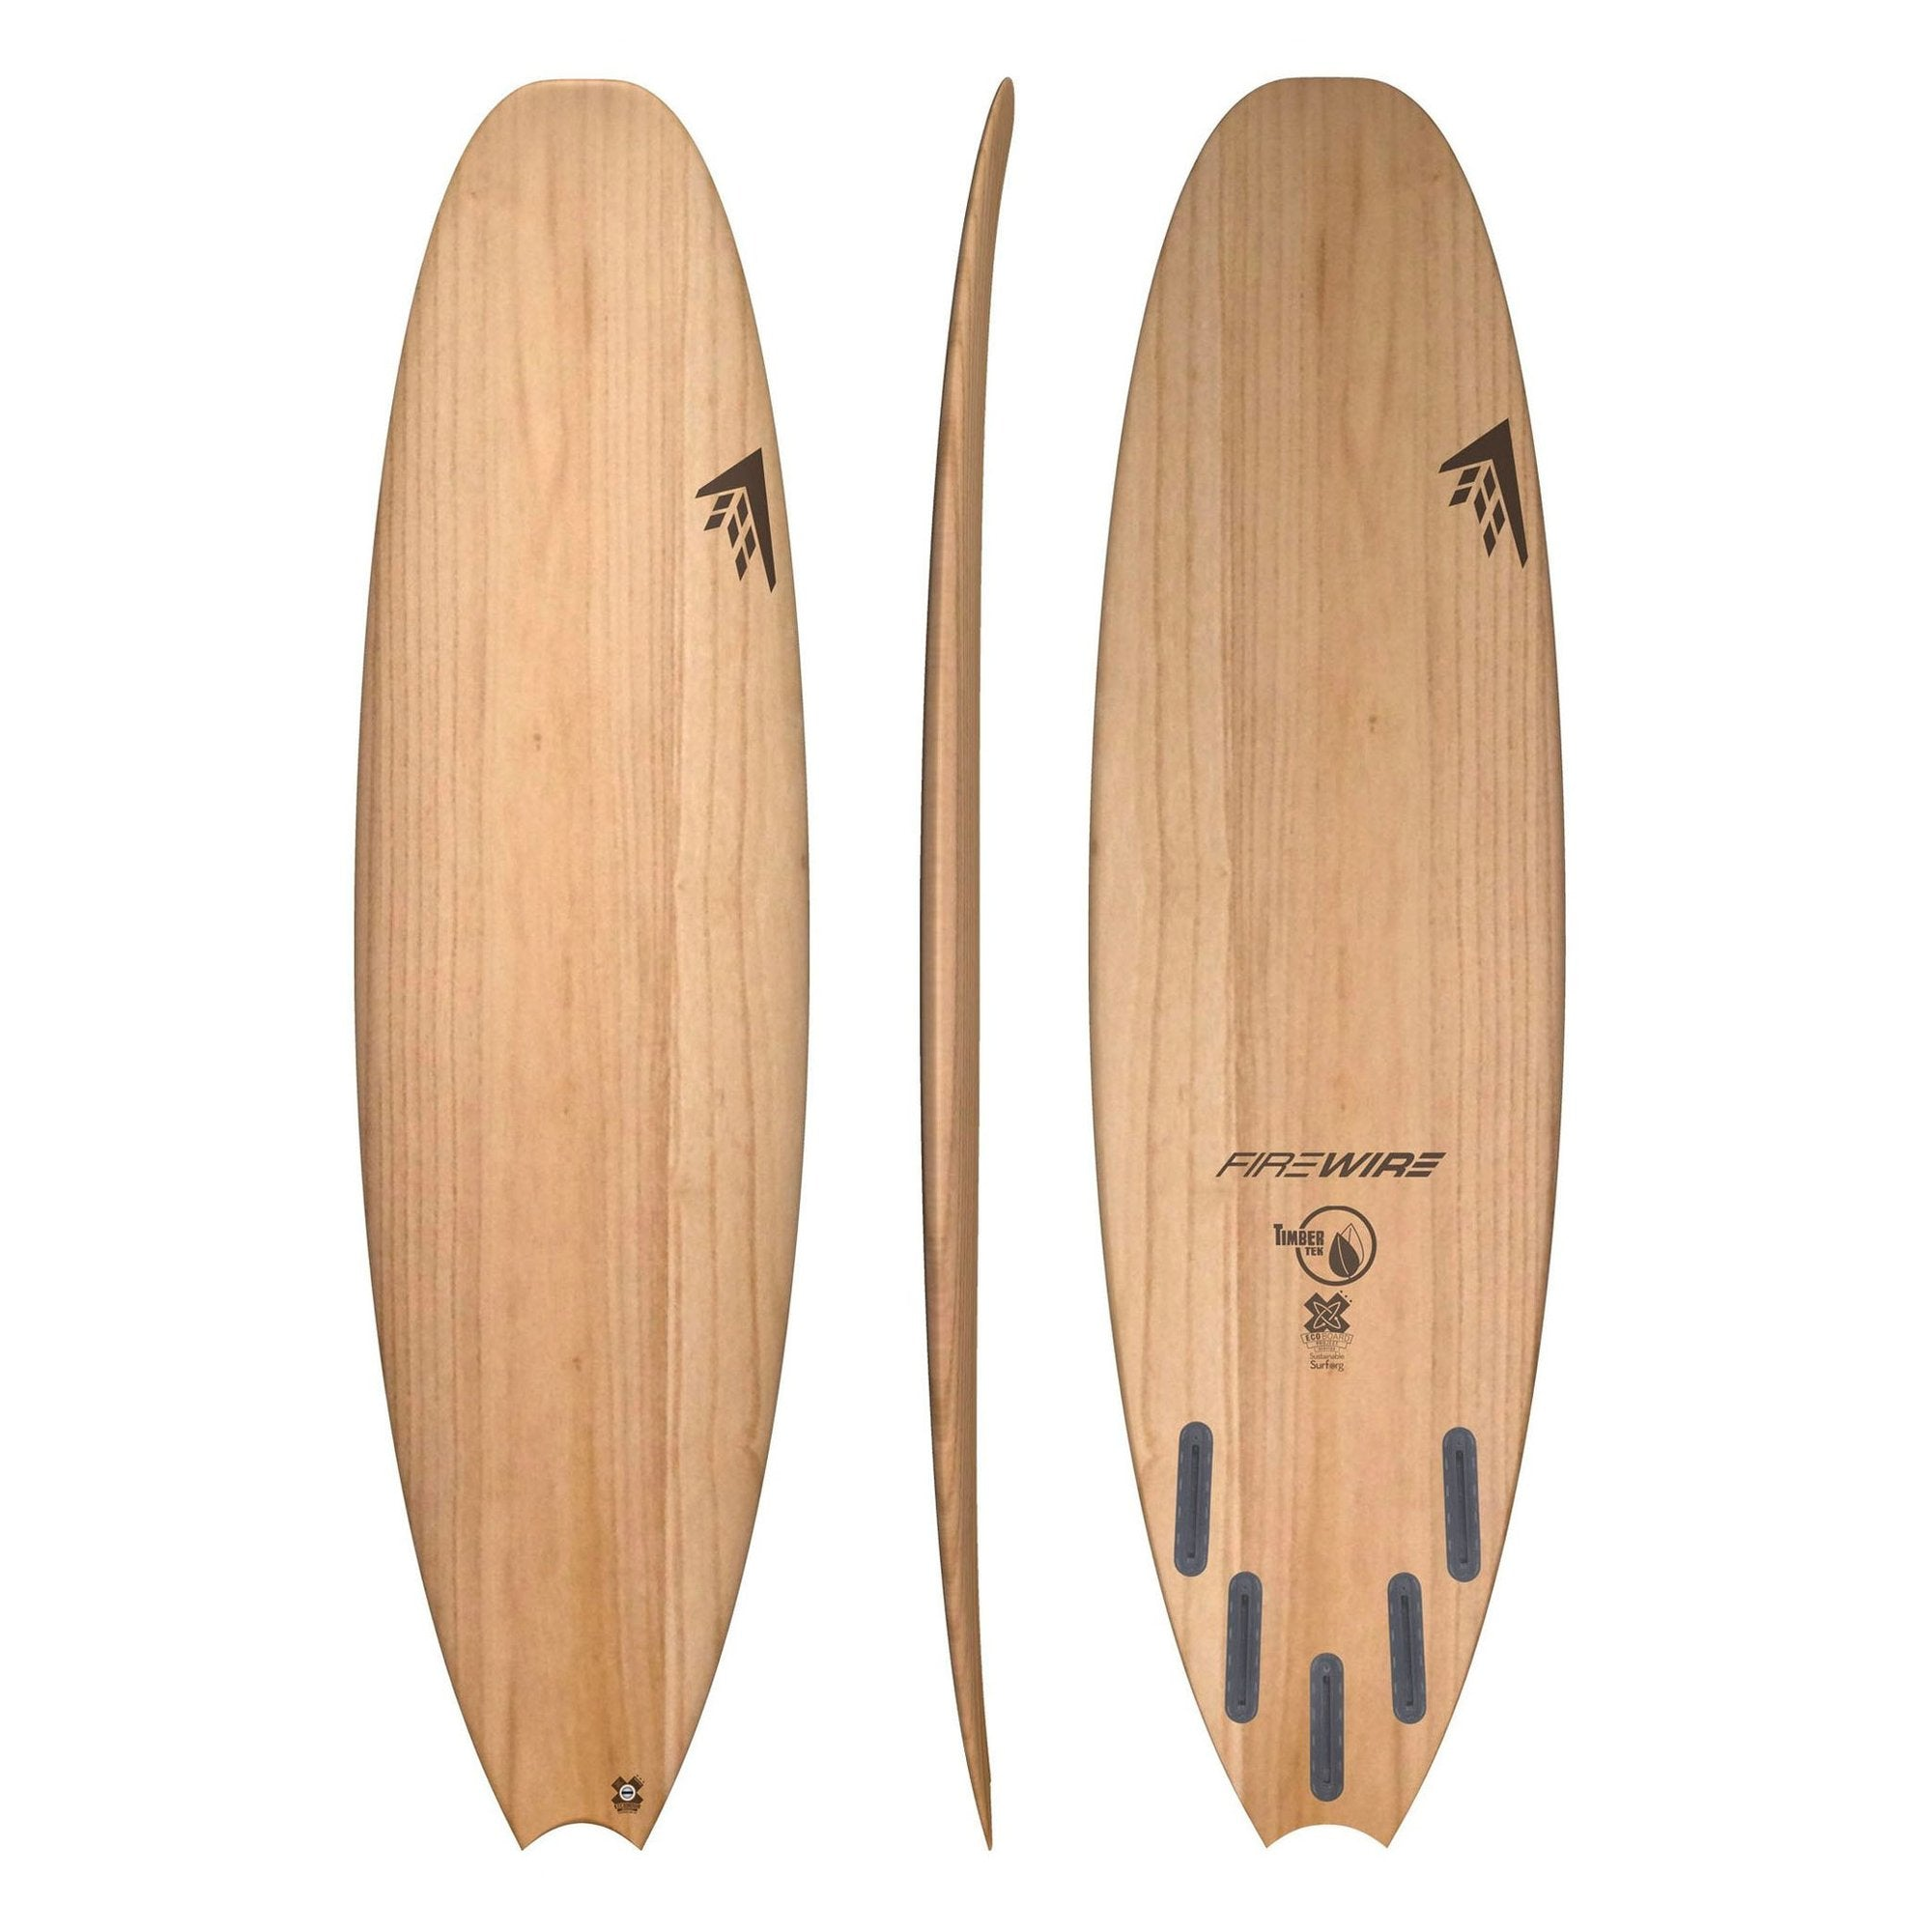 Firewire SubMoon Discount Surfboard